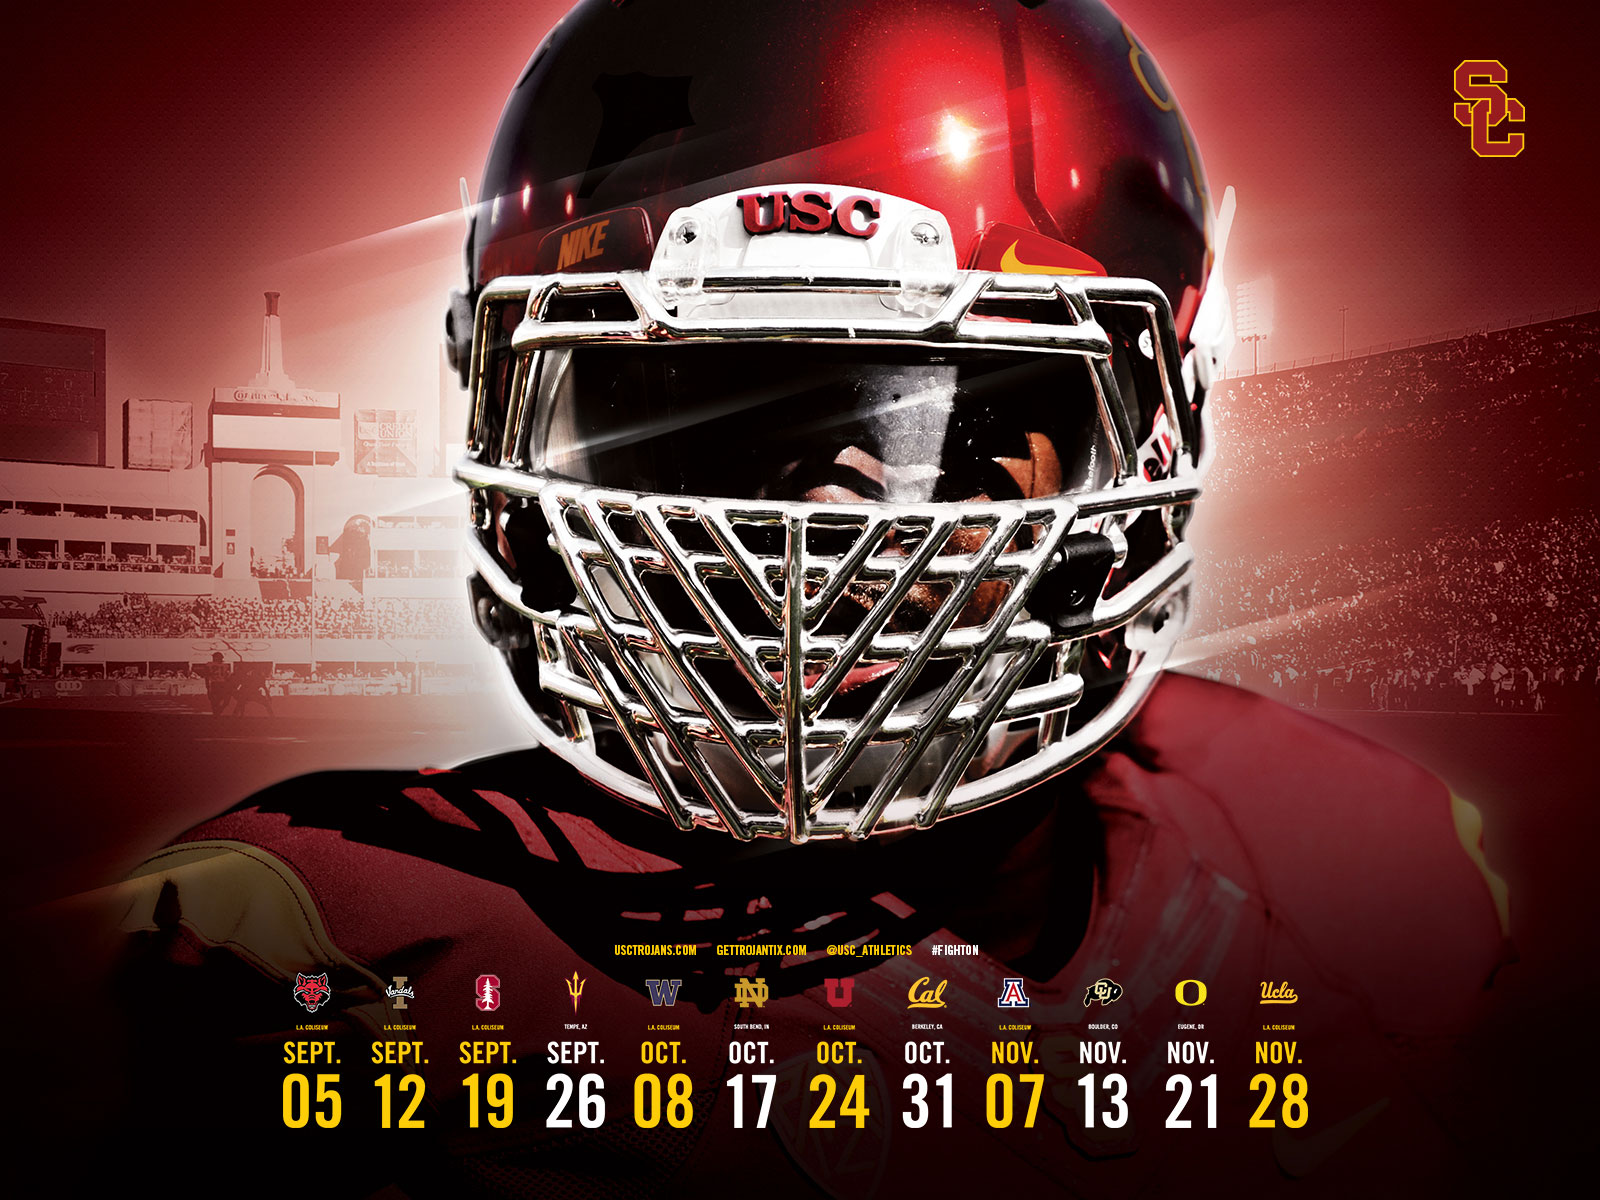 Usc Football Schedule 2020.Usc Trojans Football Schedule 2019 Usc S 2019 Football